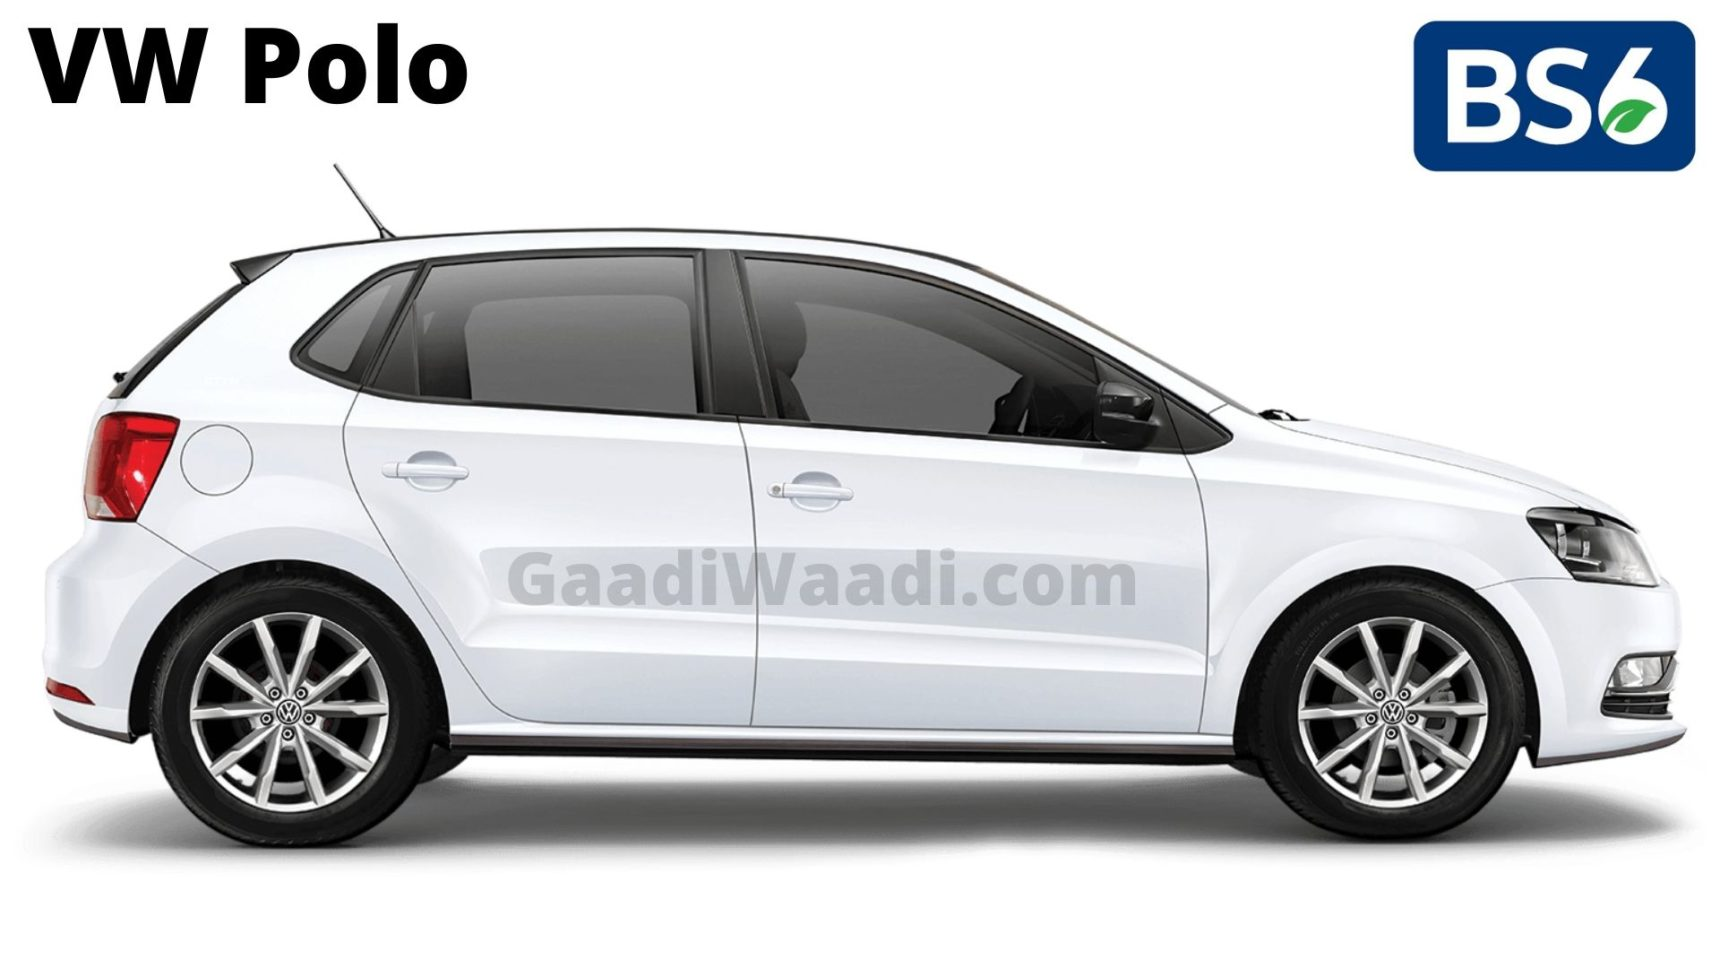 BS6 Volkswagen Polo, Vento Petrol Launched, Diesel Discontinue thumbnail